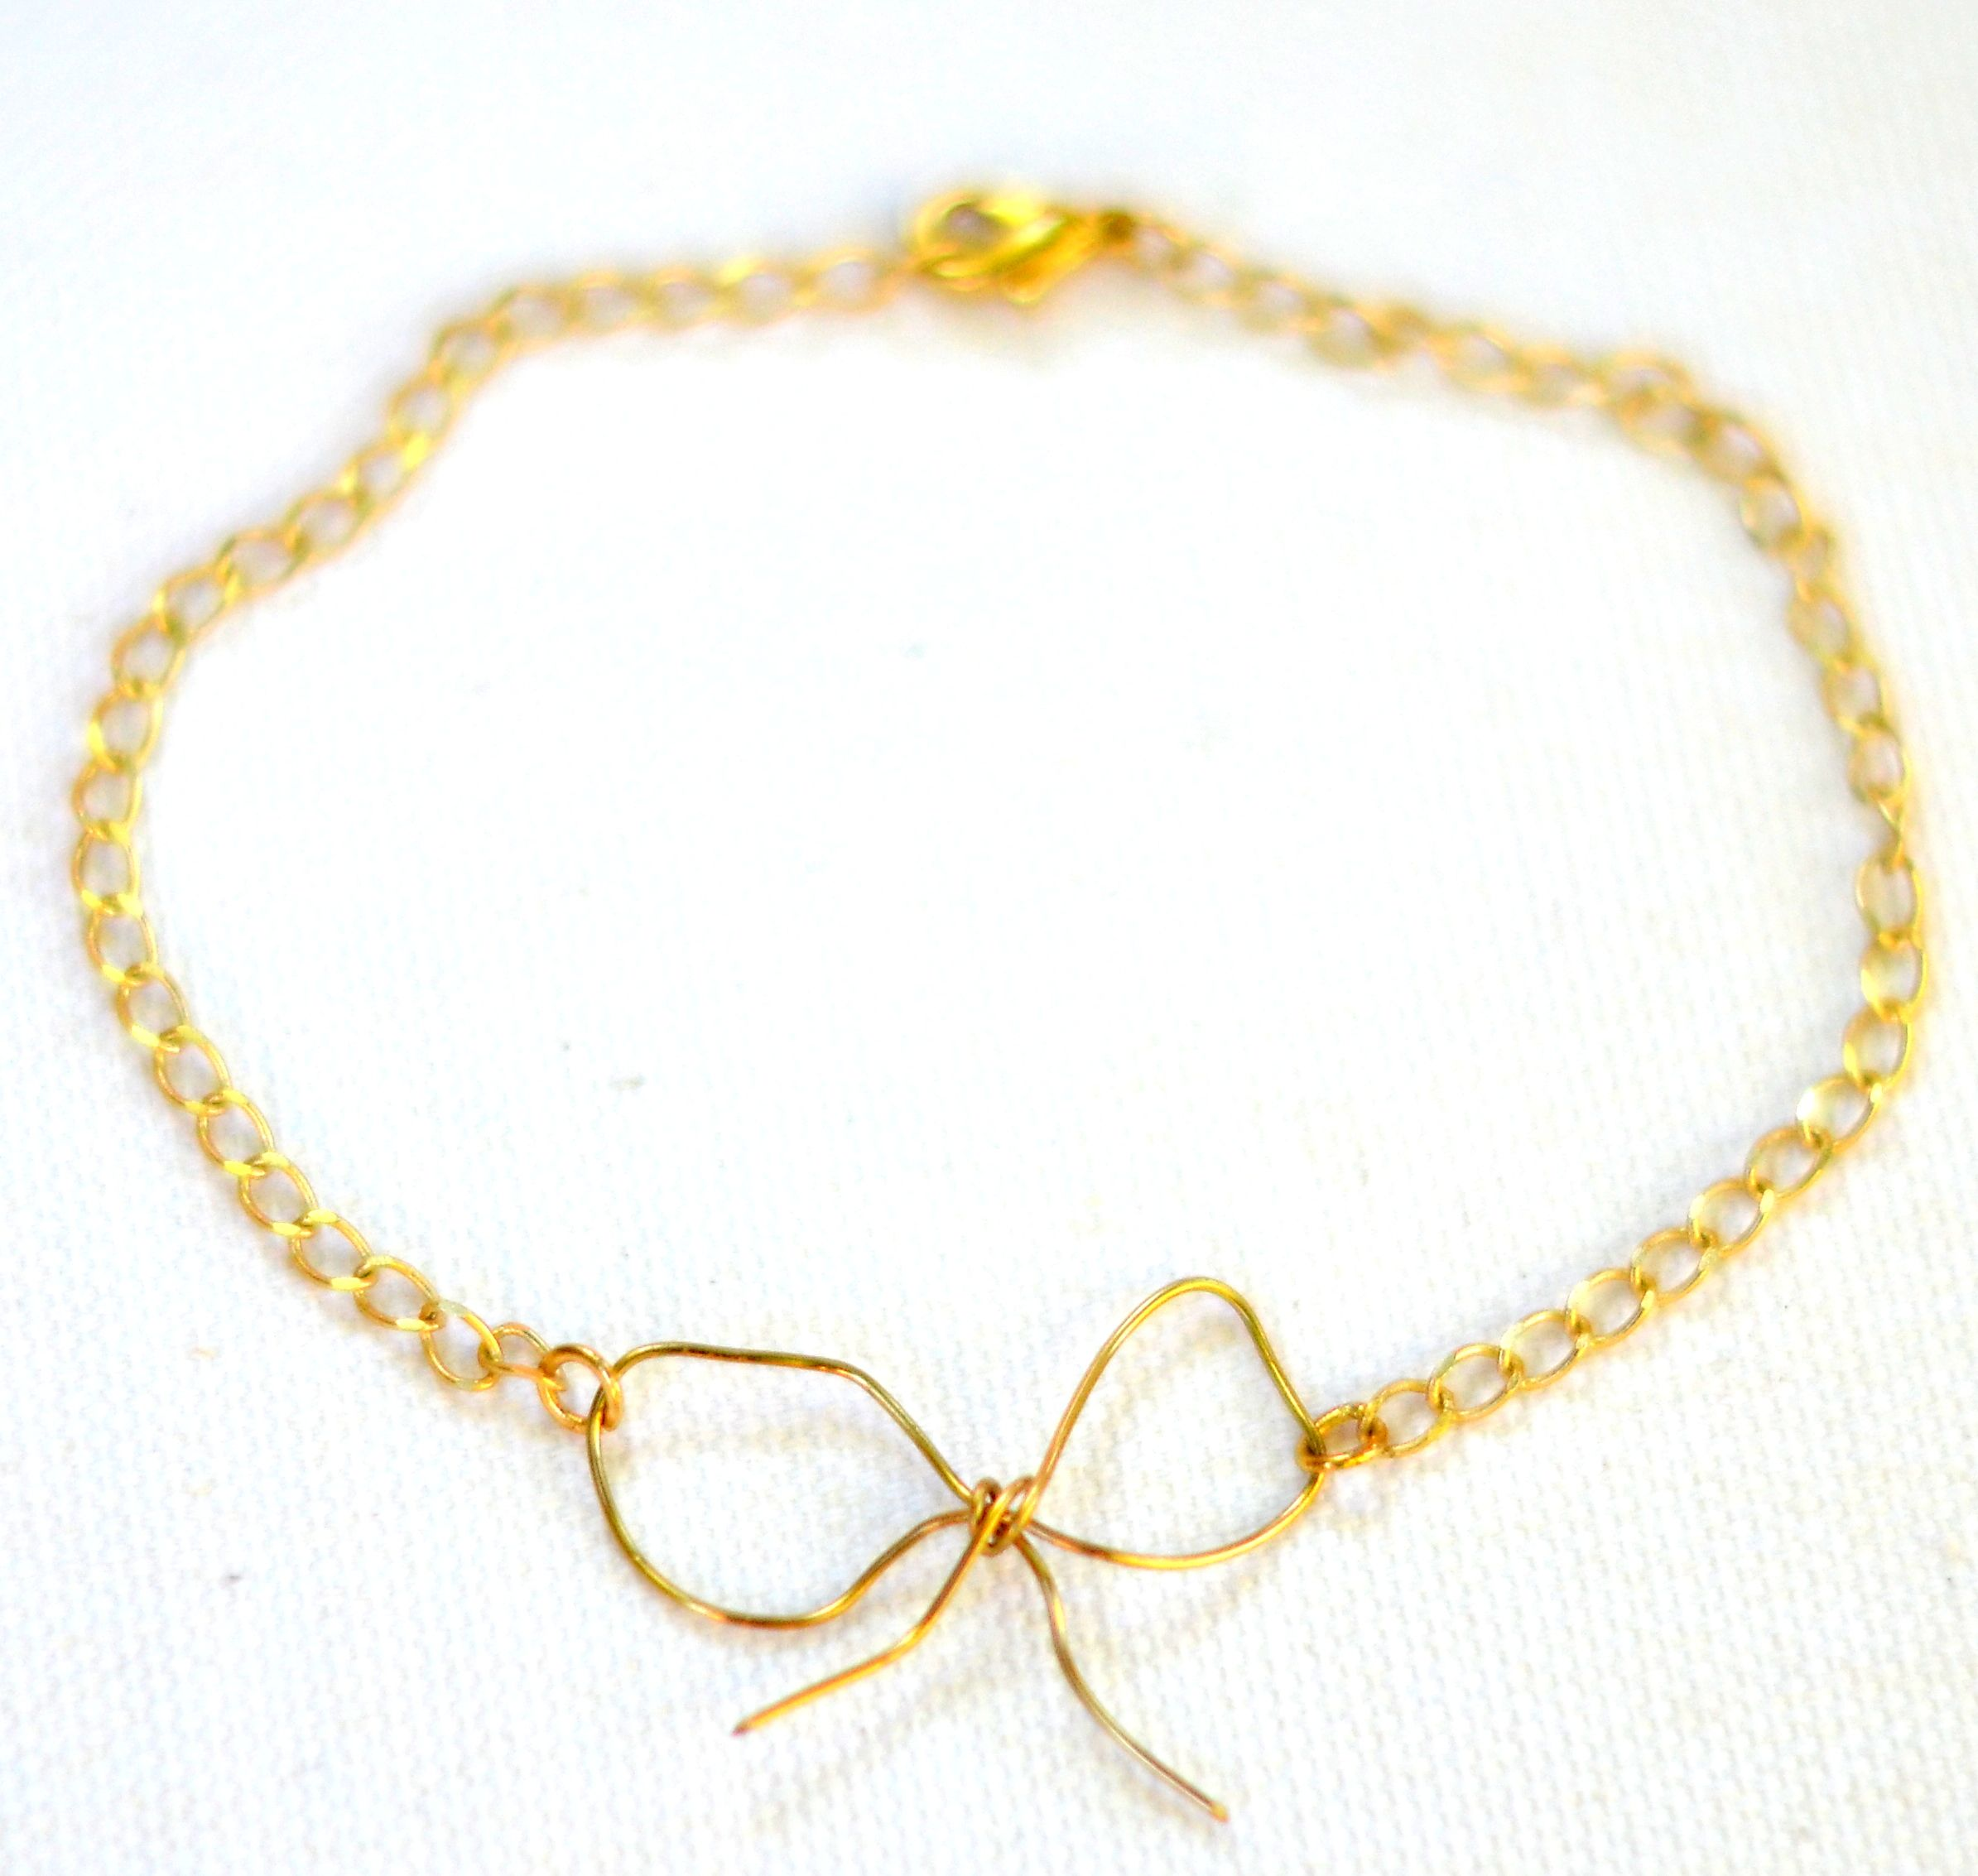 gallery gold diamond bow white jewelry kc lyst metallic designs in bracelet product